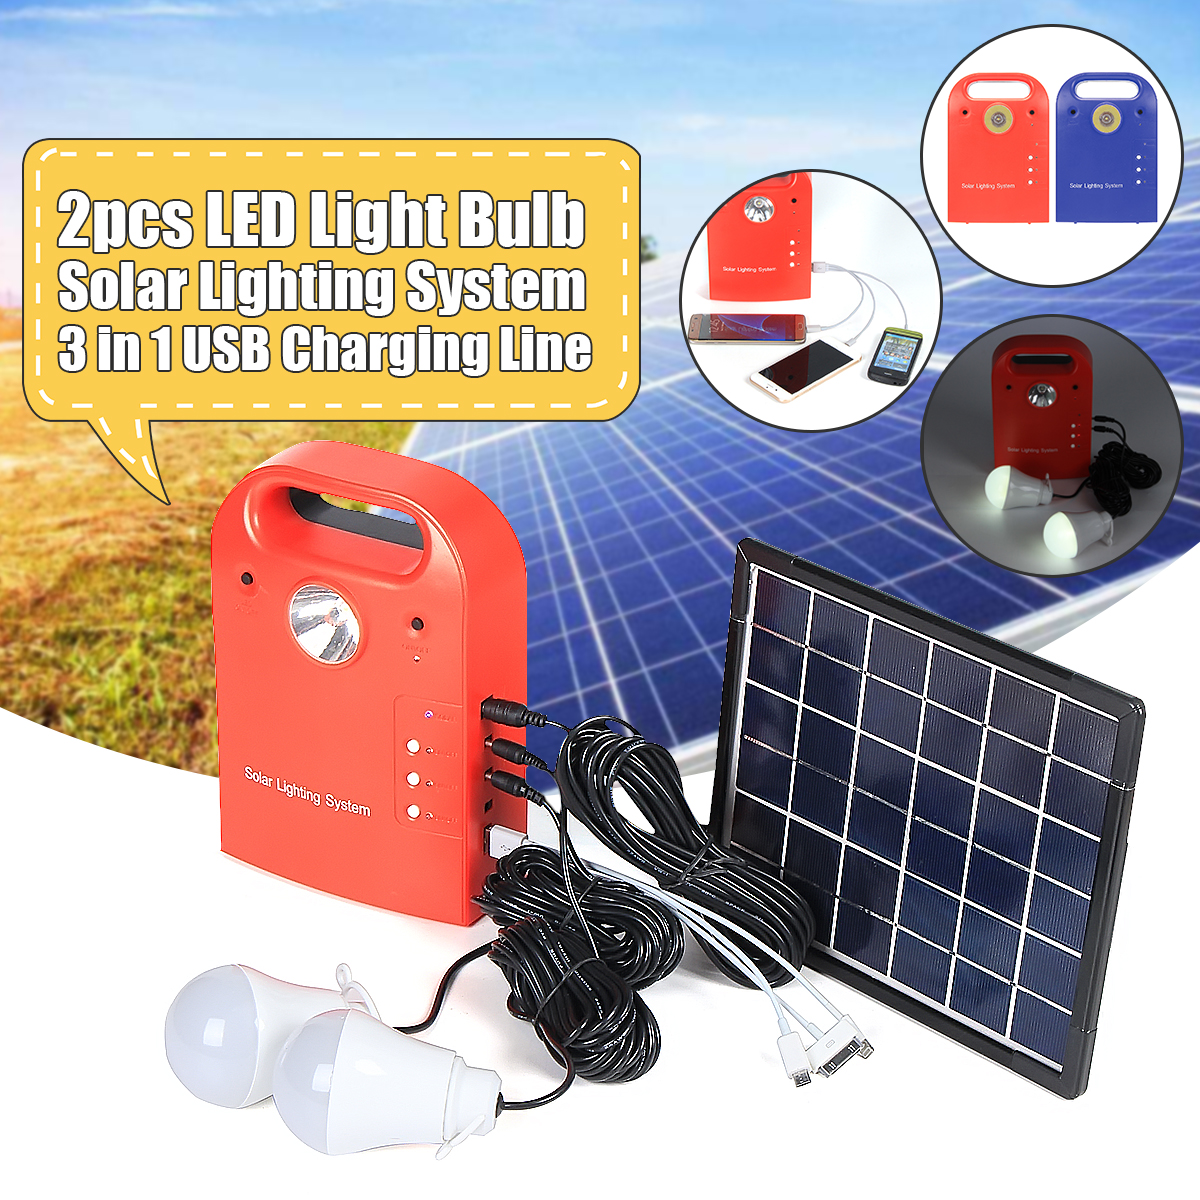 5W Portable Small DC Home Outdoor Lighting Solar Panels Charging Generator Power System